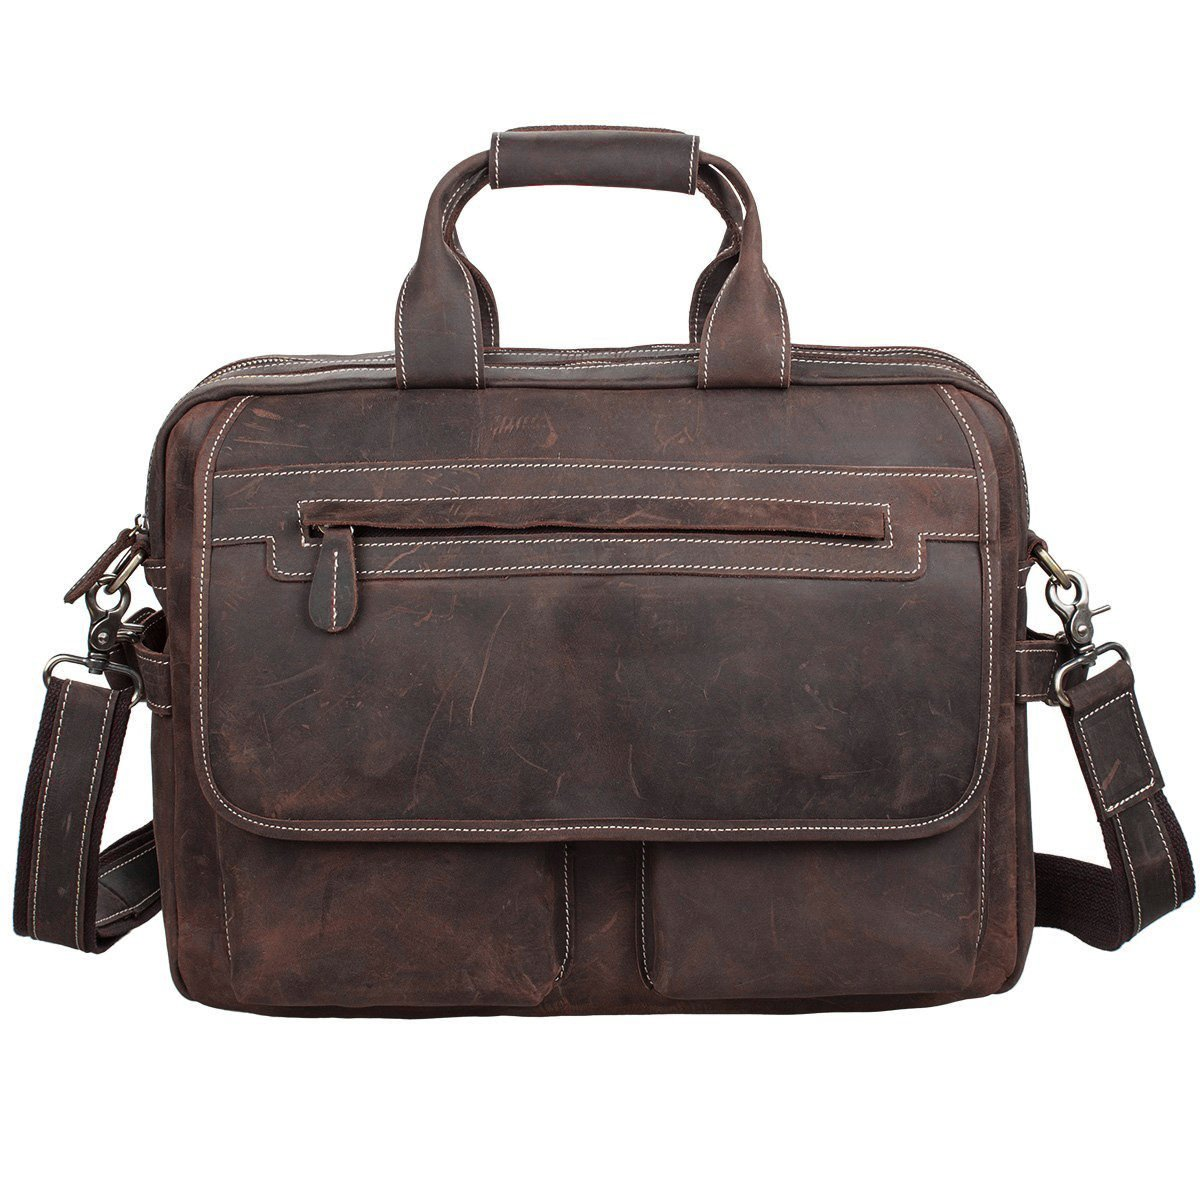 S-ZONE Crazy Horse Leather Shoulder Briefcase for 16 Inch Laptop Bag by S-ZONE (Image #6)